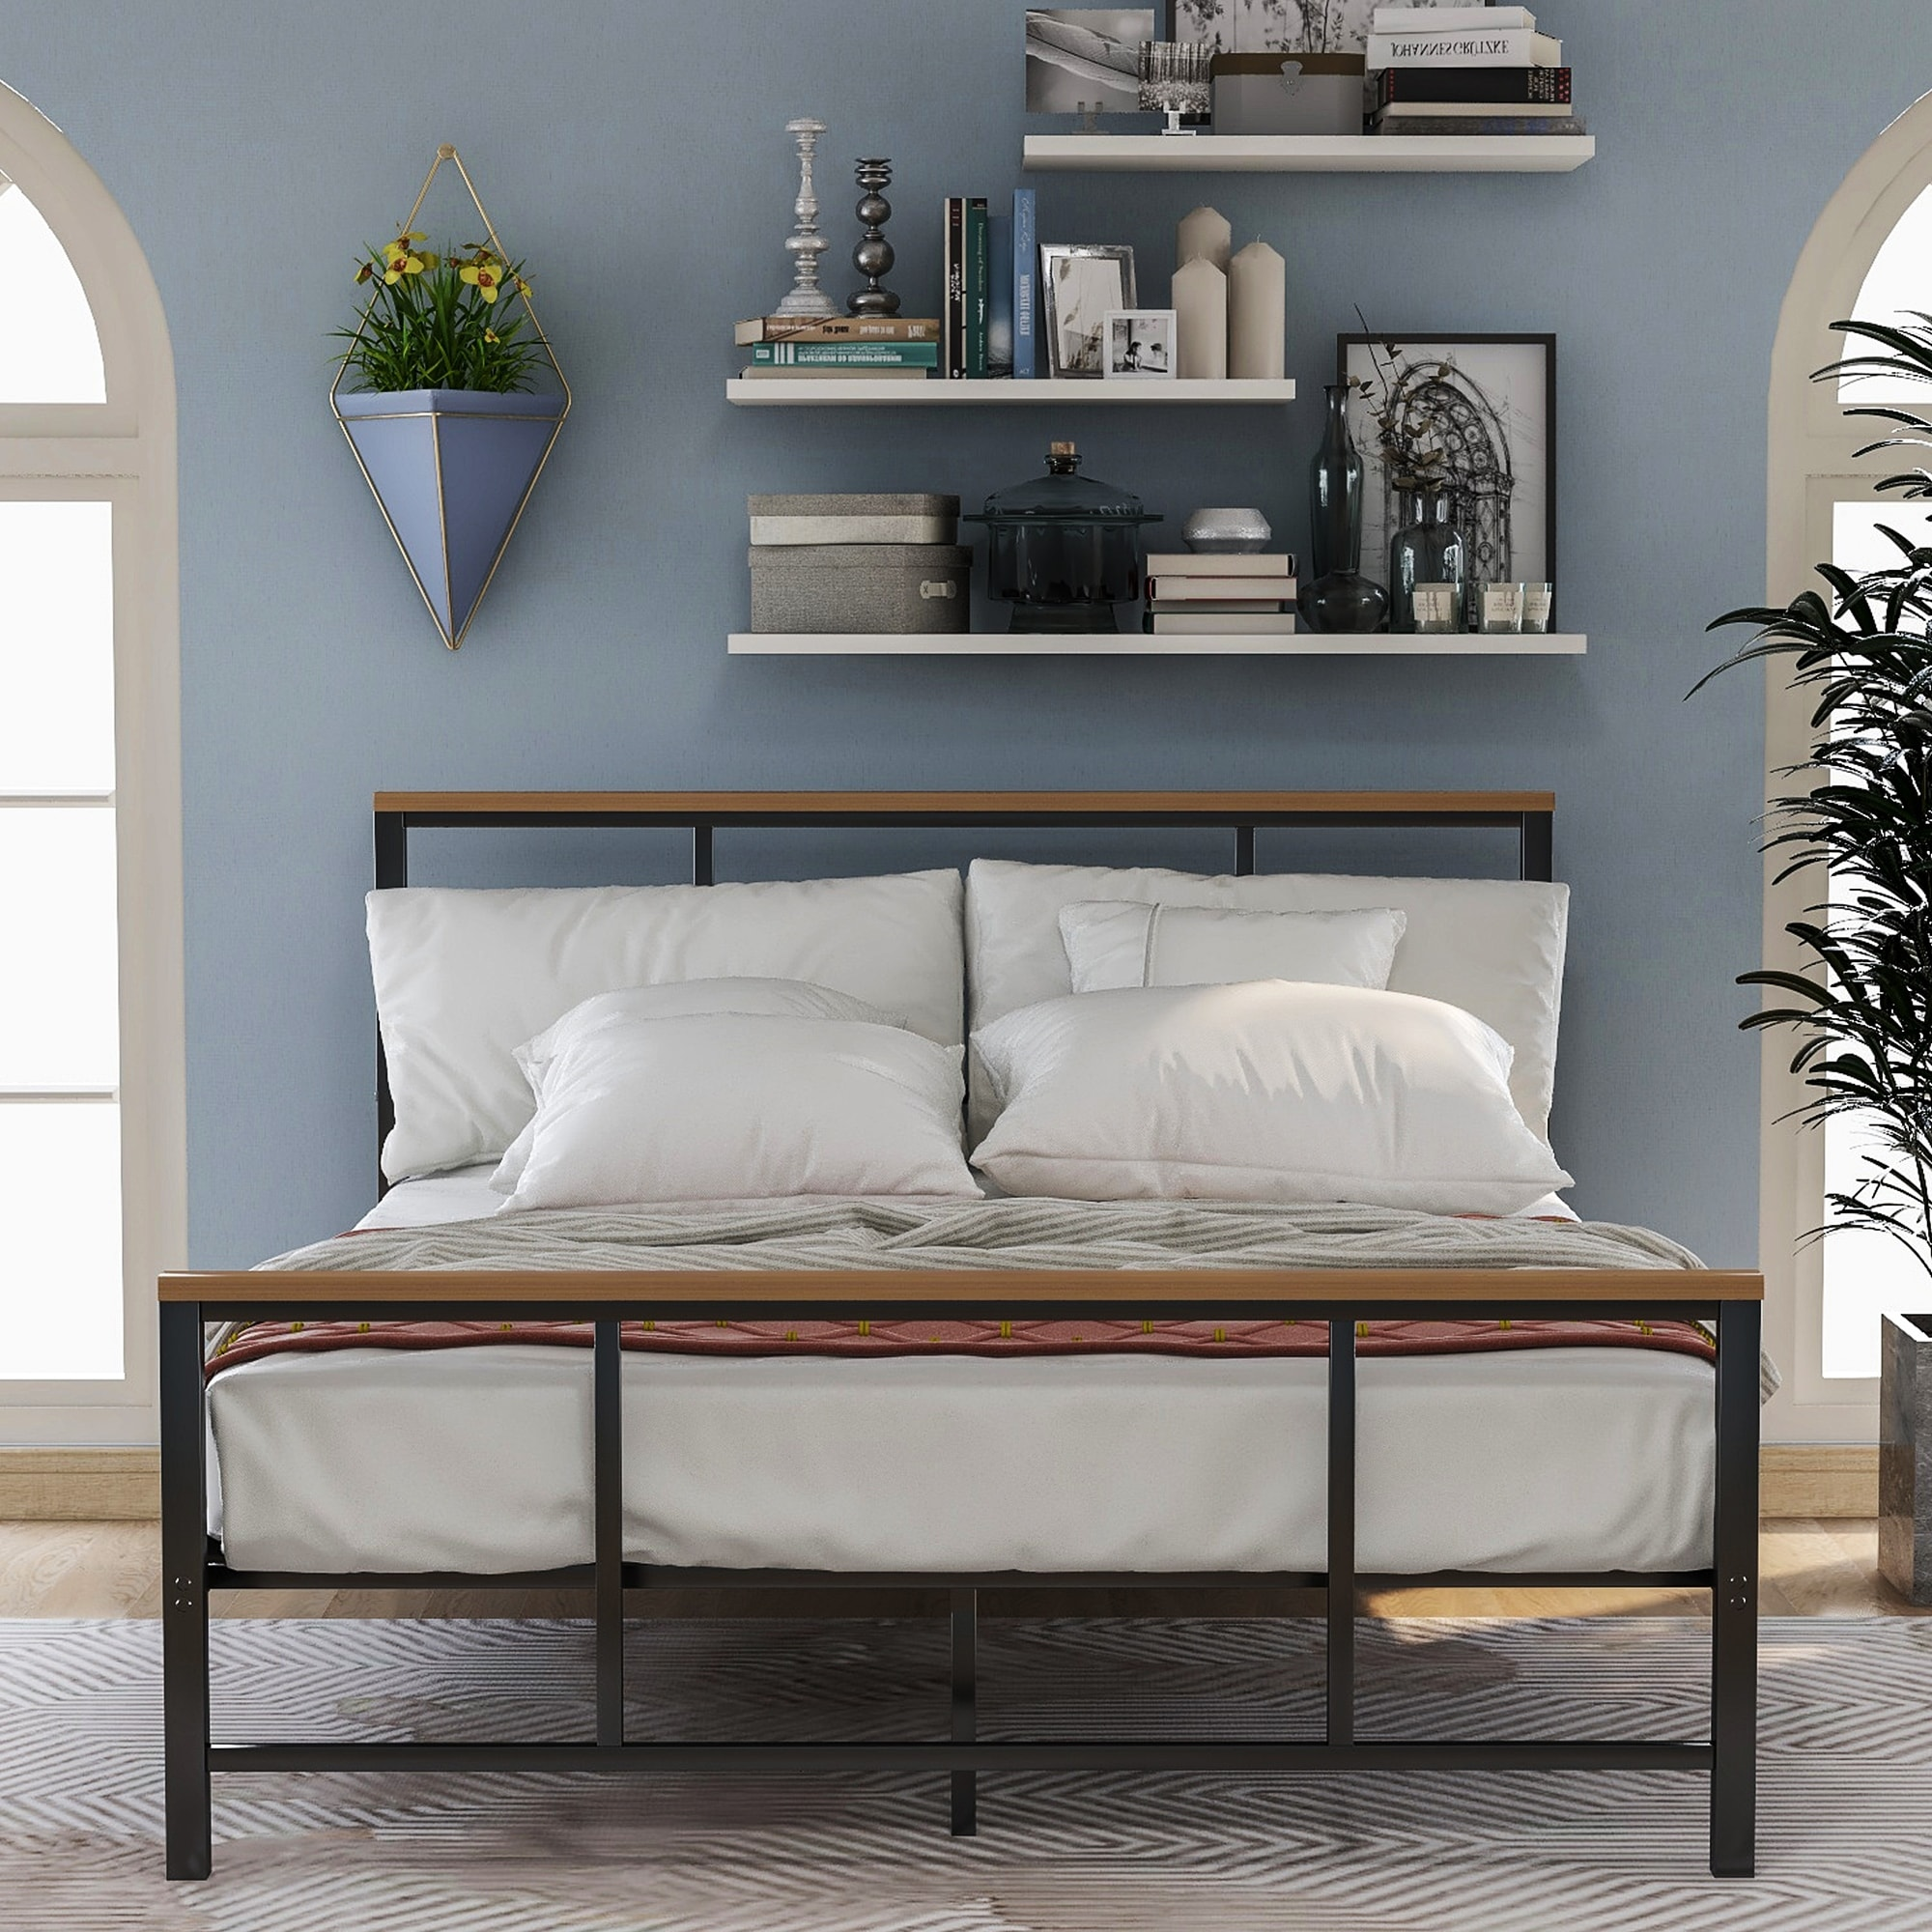 Decorating Bedrooms With Metal Beds  from ak1.ostkcdn.com